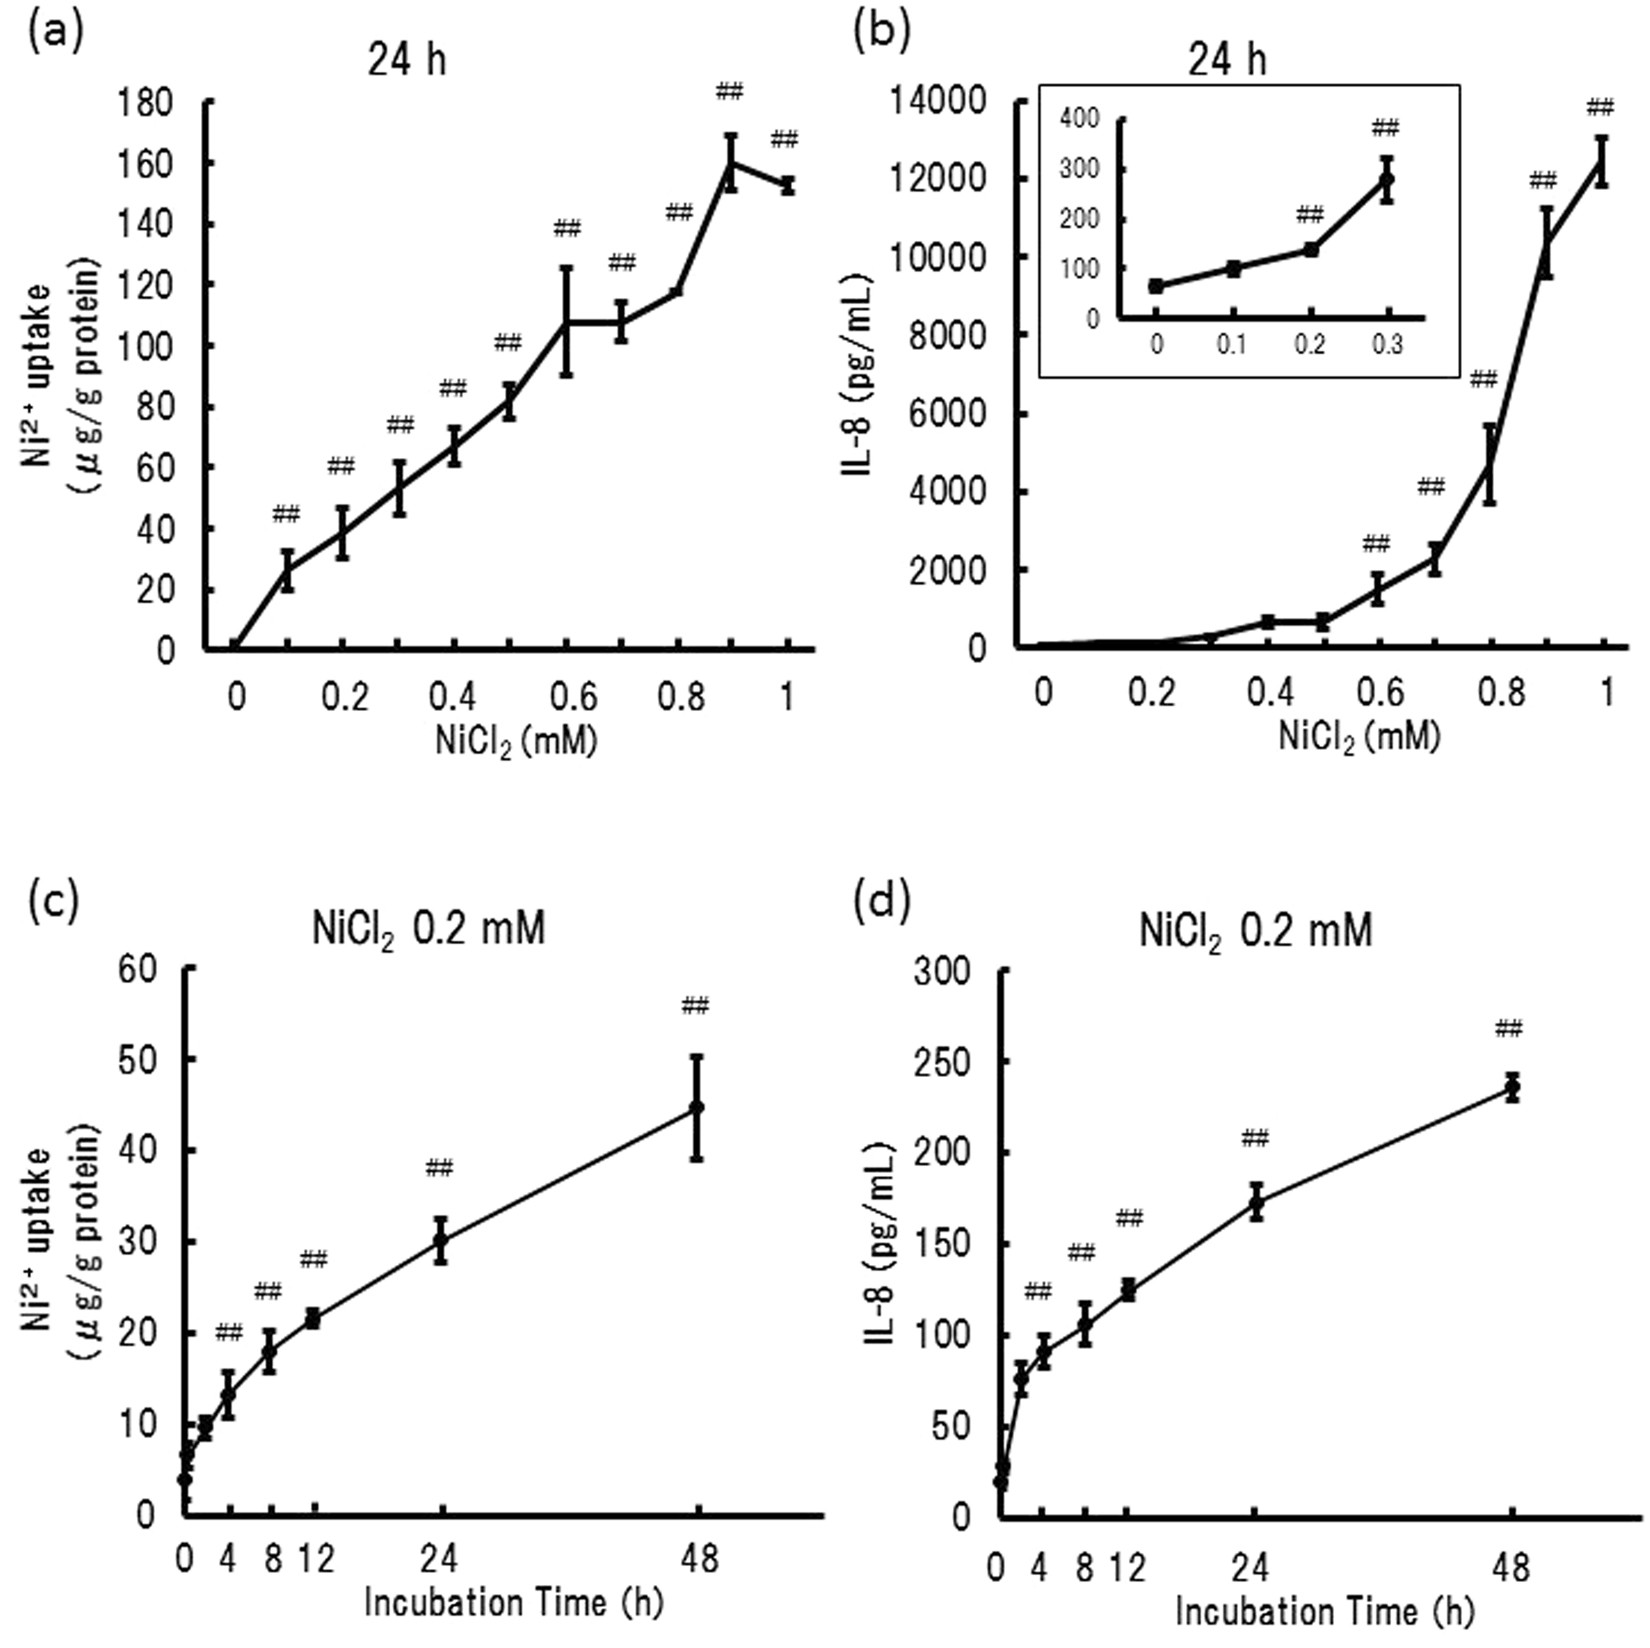 Zinc Ions Have A Potential To Attenuate Both Ni Ion Uptake And Alpha Sports Wiring Diagram Induced Inflammation Scientific Reports